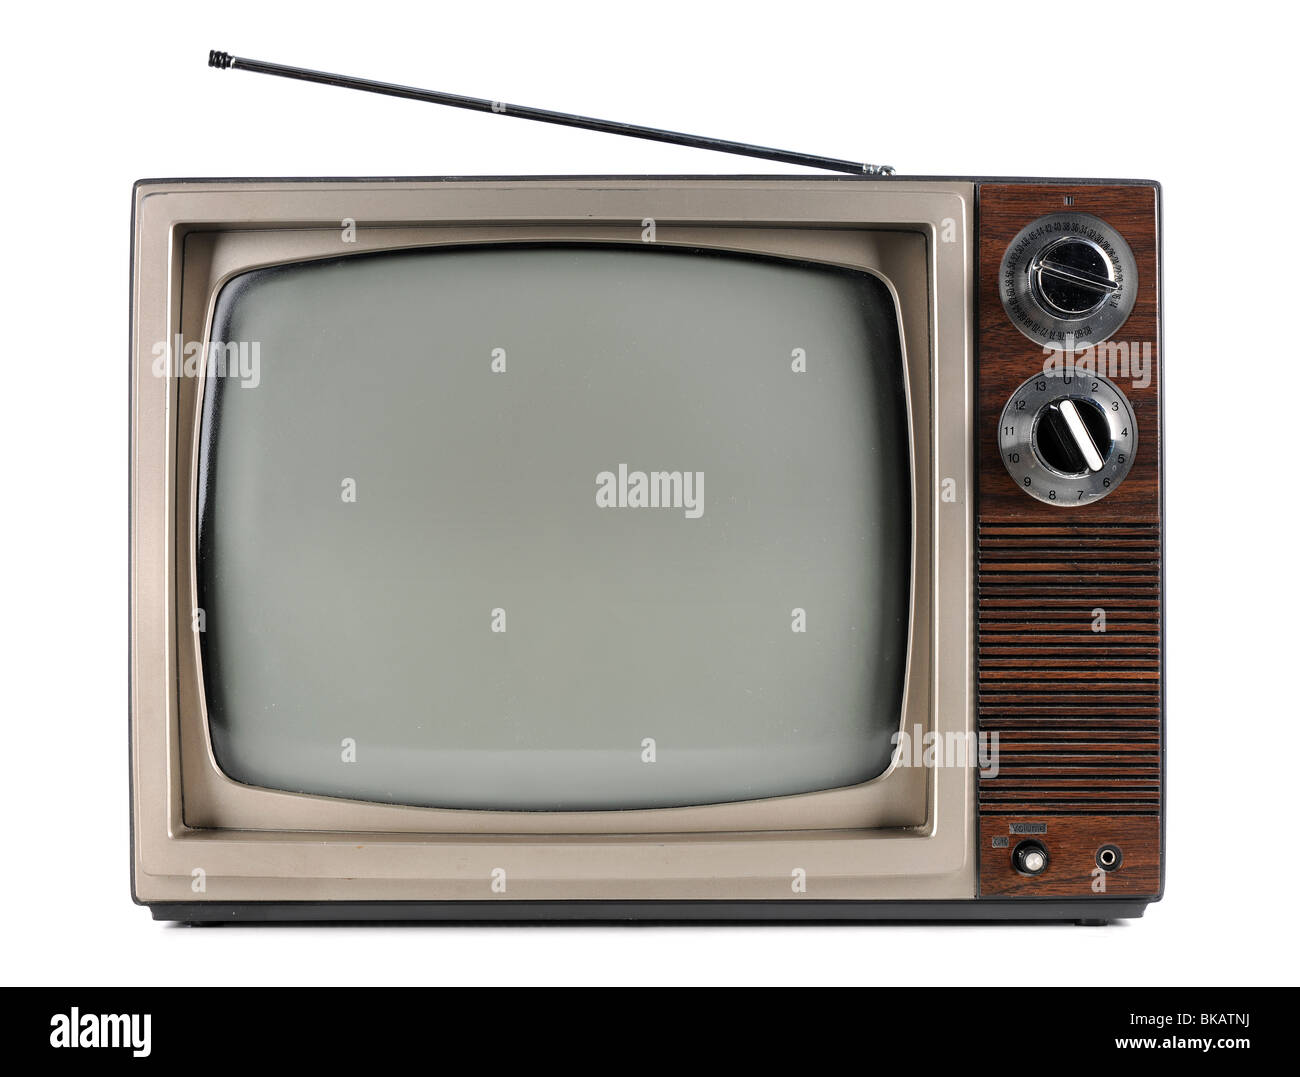 Vintage television with antenna isolated over white background - With clipping path - Stock Image